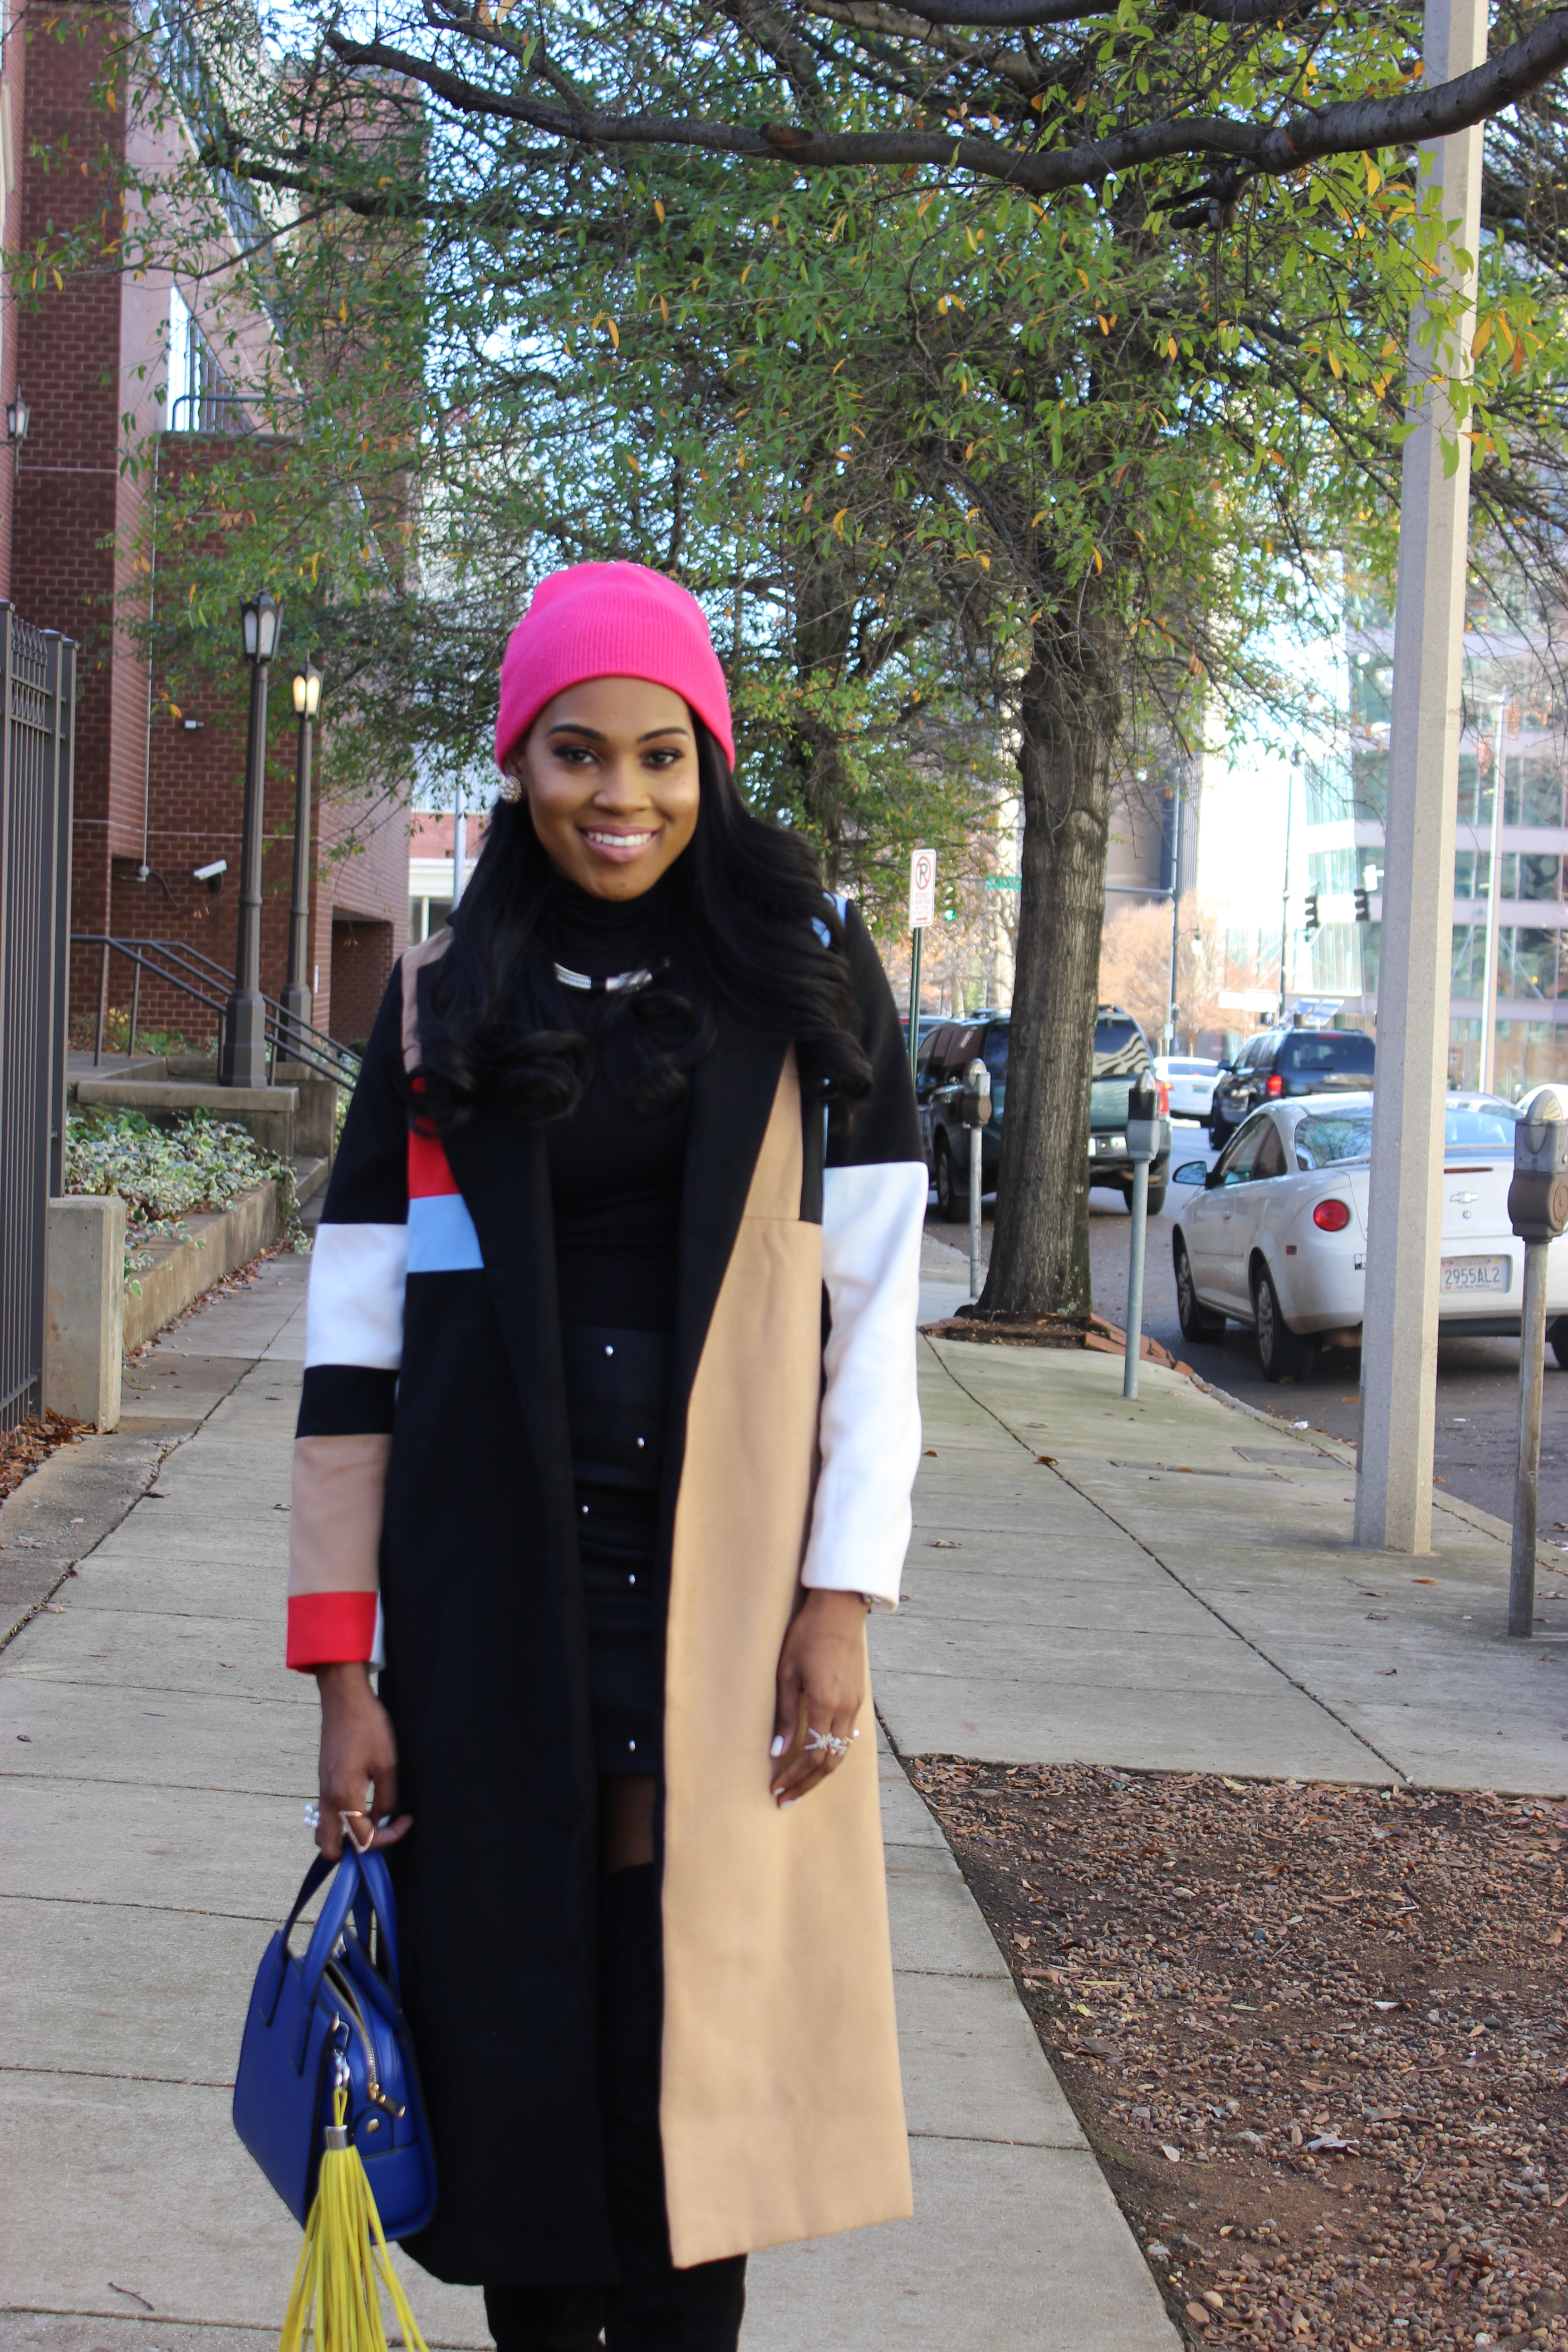 Style-Files-SheIn-Multicolor-Lapel-Color-Block-Coat-Forever21-Faux-Leather-studded-mini-skirt-black-sheer-turtleneck-Truffle-Collection-Over- The-Knee-Lace-Up-Back-High-Heeled-Boots-Hot-Pink-Beanie-Winter-Coat-Style-Guide-Oohlalablog-3